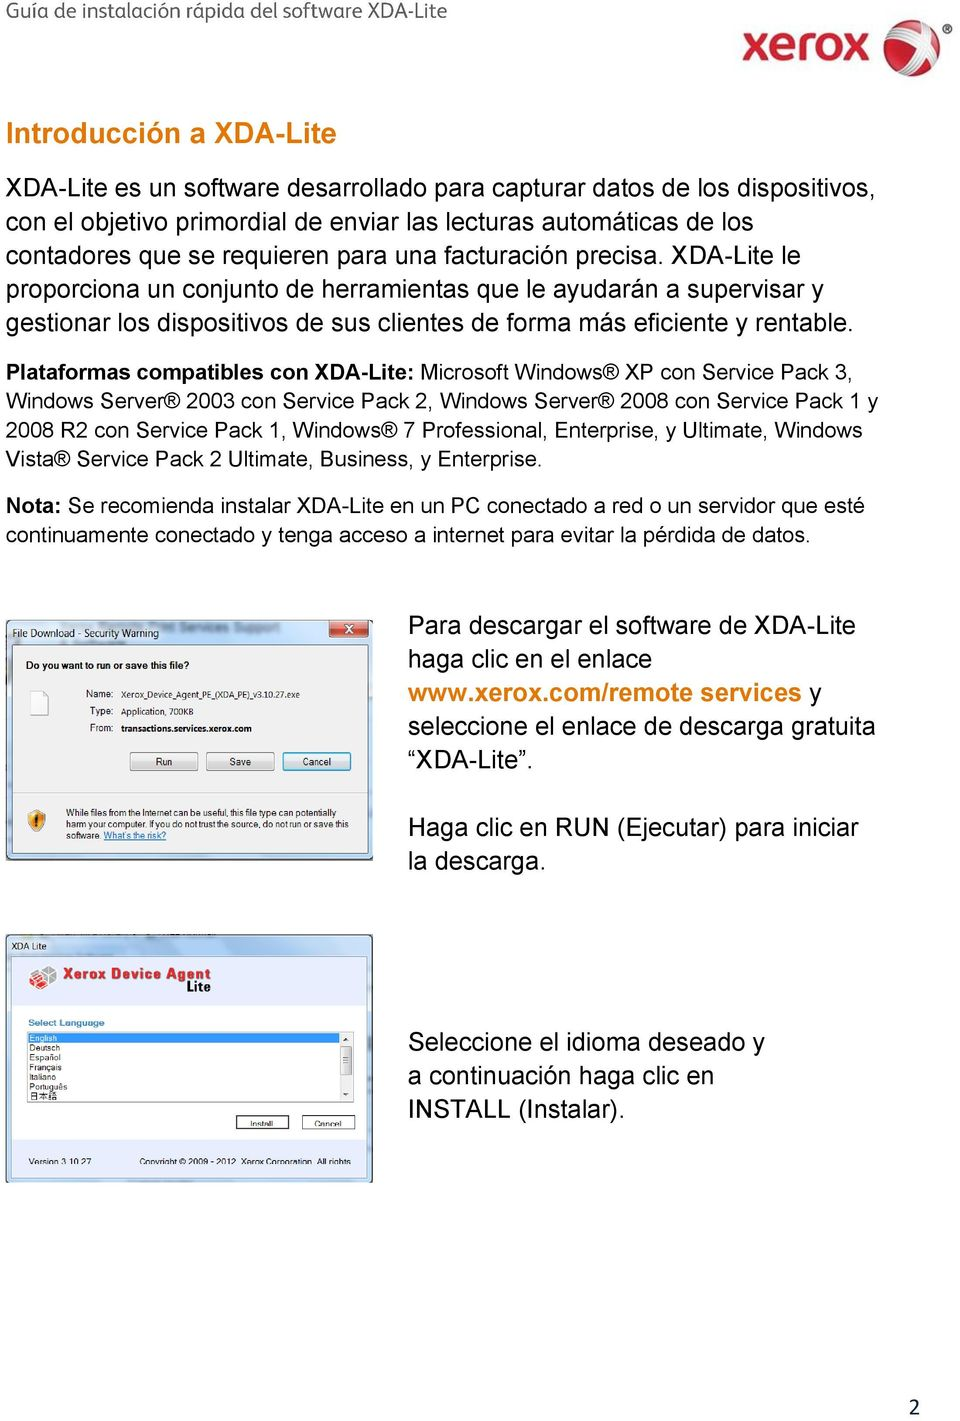 Plataformas compatibles con XDA-Lite: Microsoft Windows XP con Service Pack 3, Windows Server 2003 con Service Pack 2, Windows Server 2008 con Service Pack 1 y 2008 R2 con Service Pack 1, Windows 7